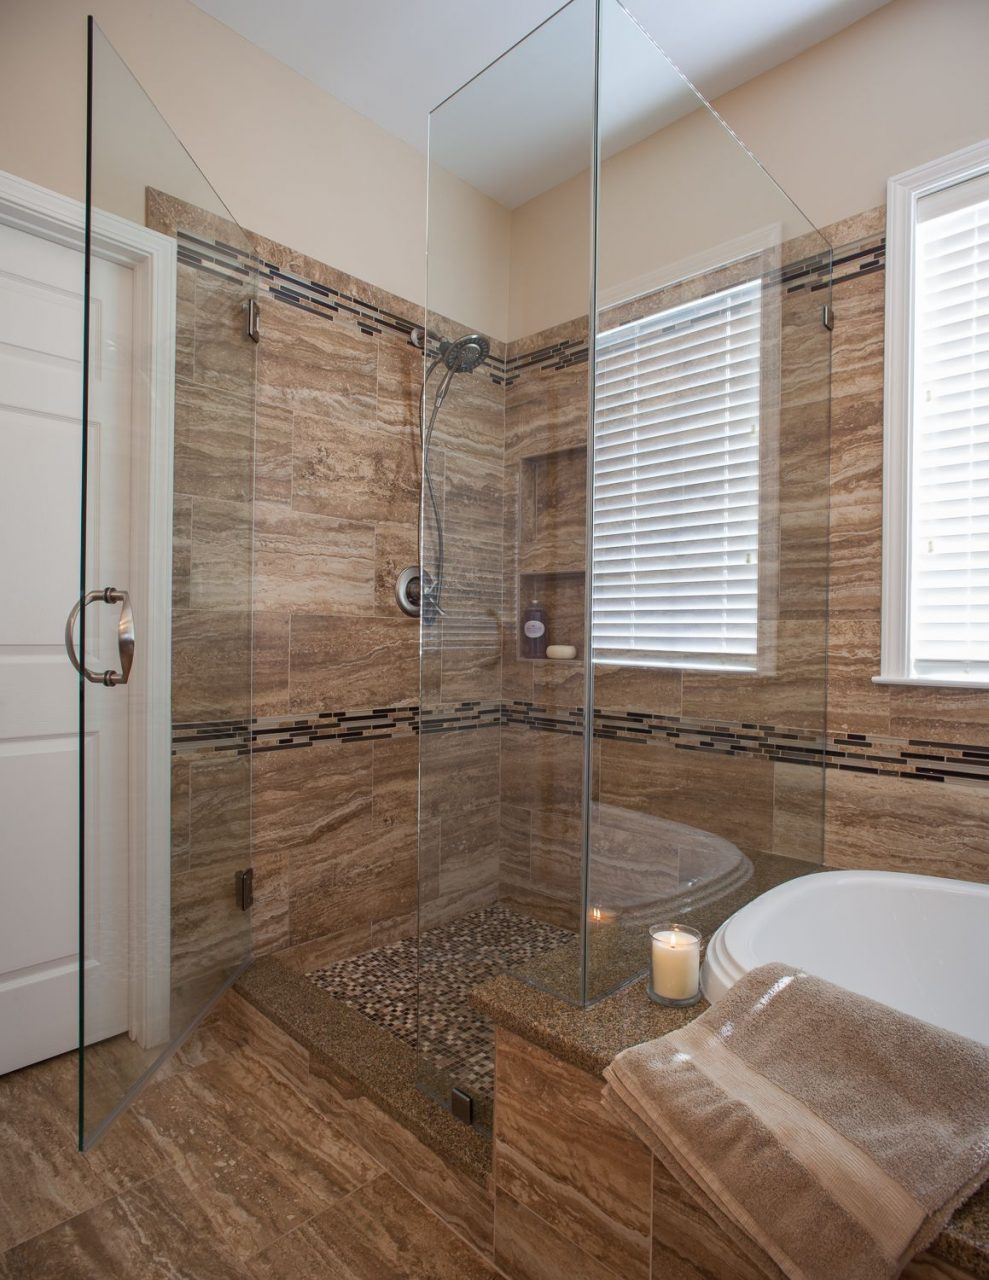 Walk In Shower Ideas For Master Bathroom With Glass Divider And